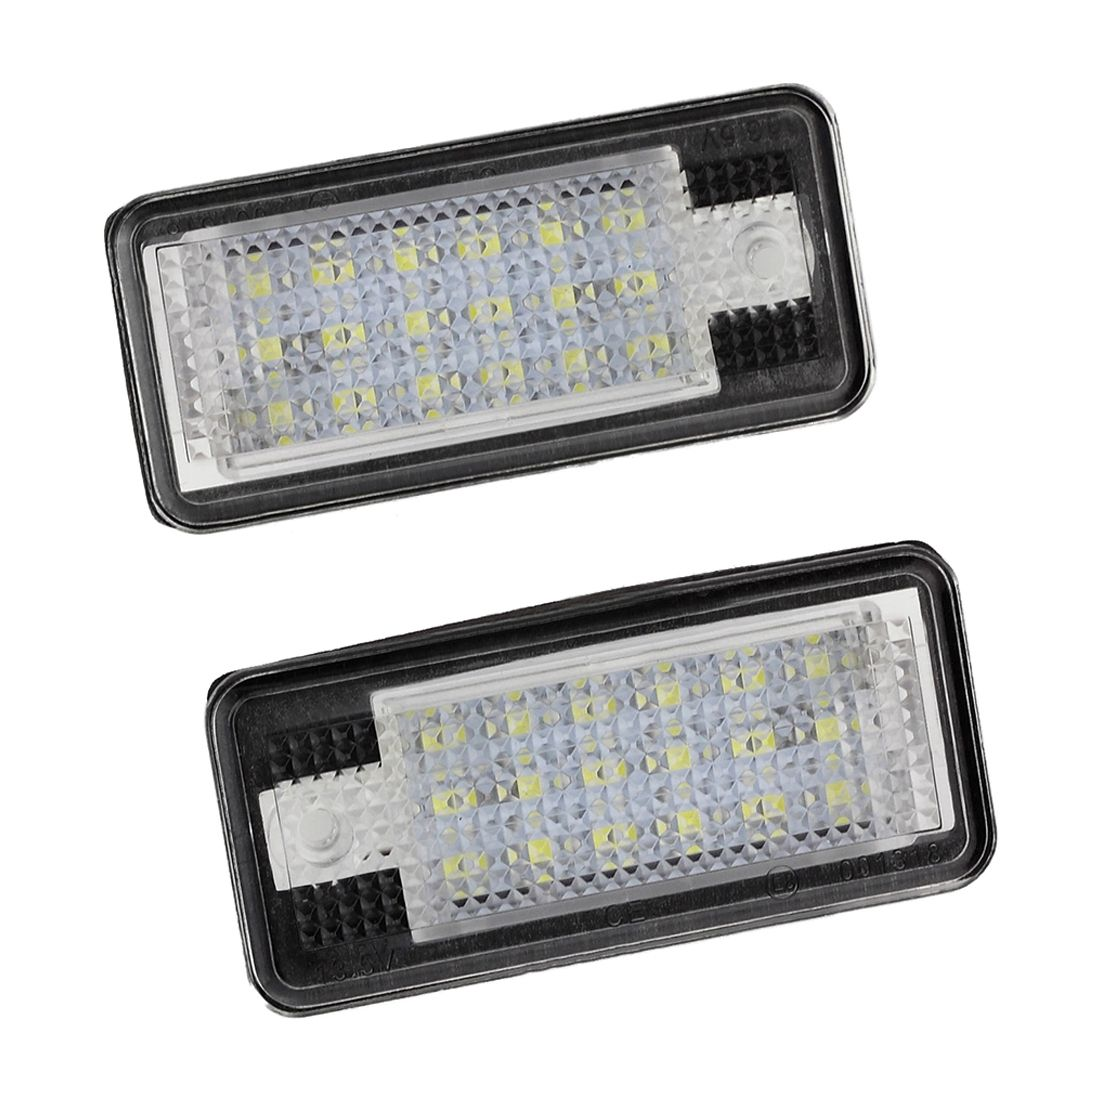 AUTO 2x 18 LED License Number Plate Light Lamp For Audi A3 S3 A4 S4 B6 A6 S6 A8 S8 Q7